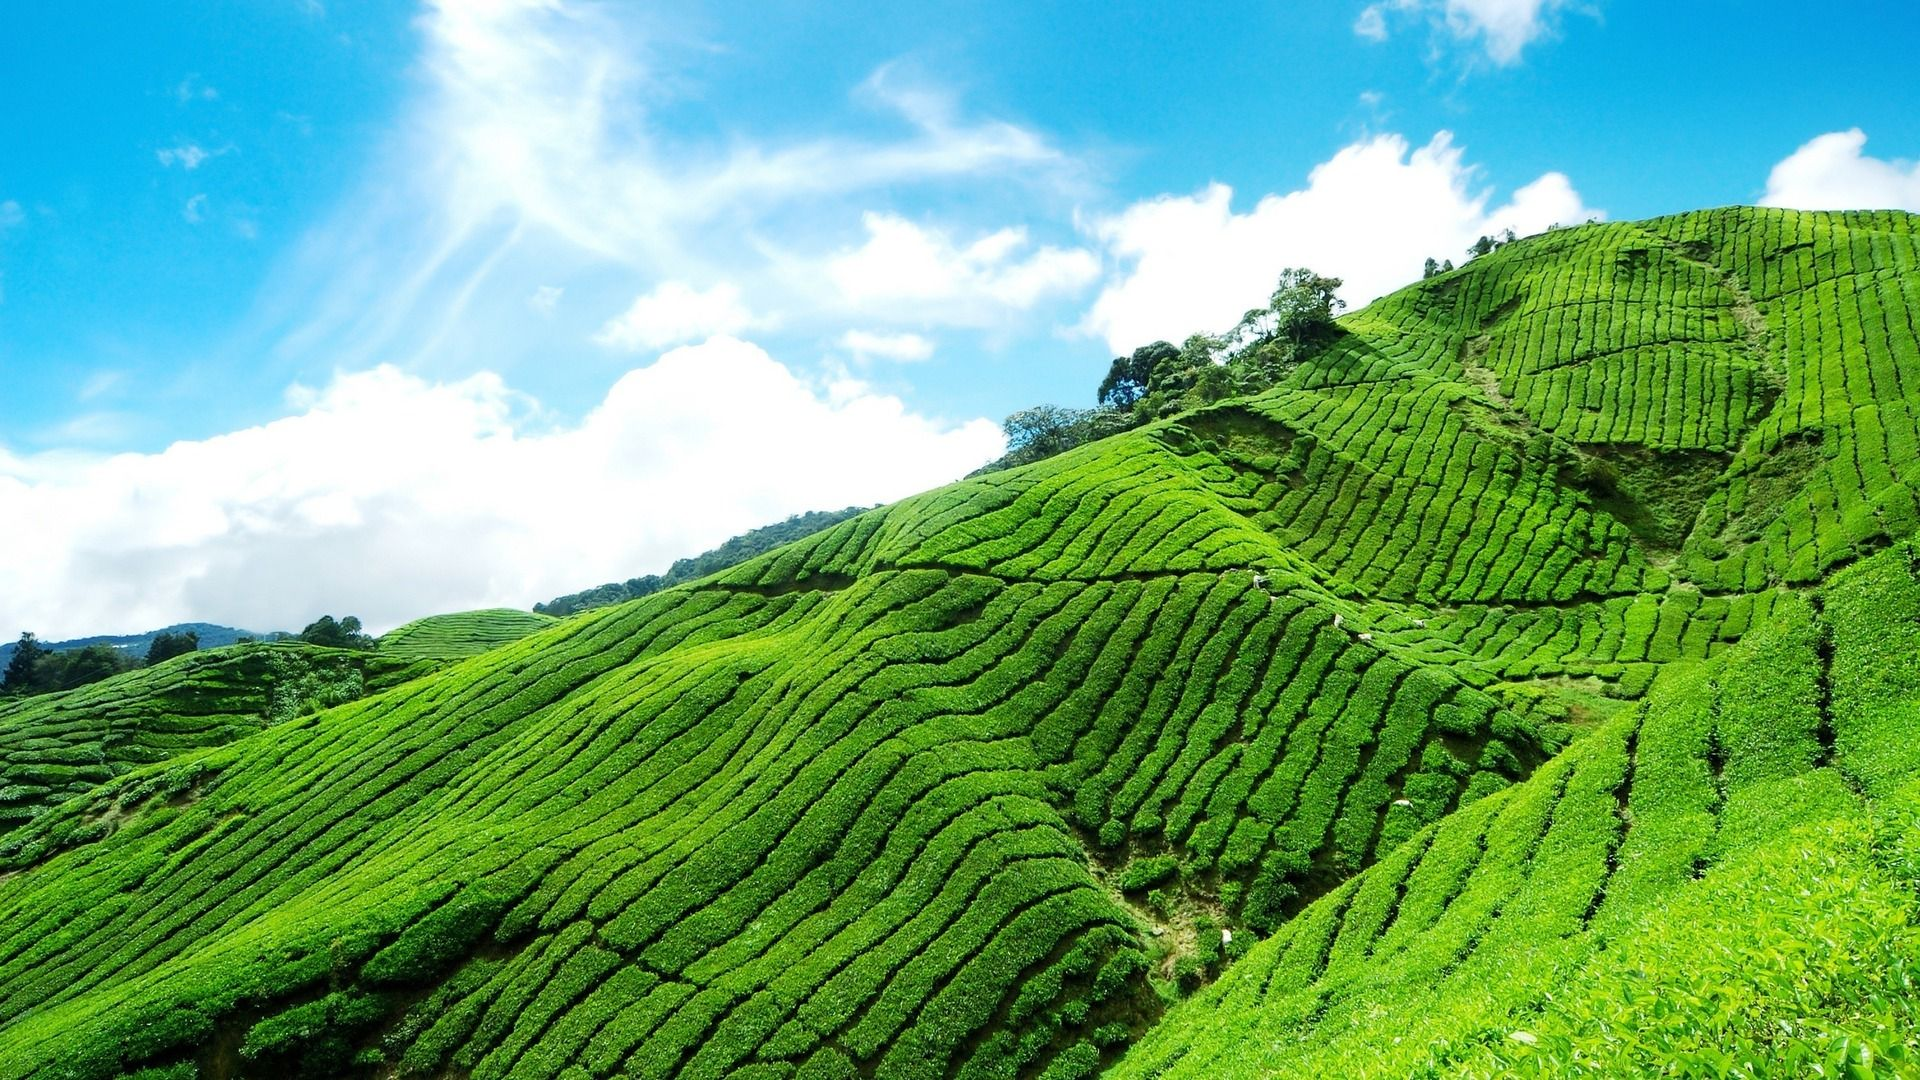 Munnar is an attractive destination with the world's best